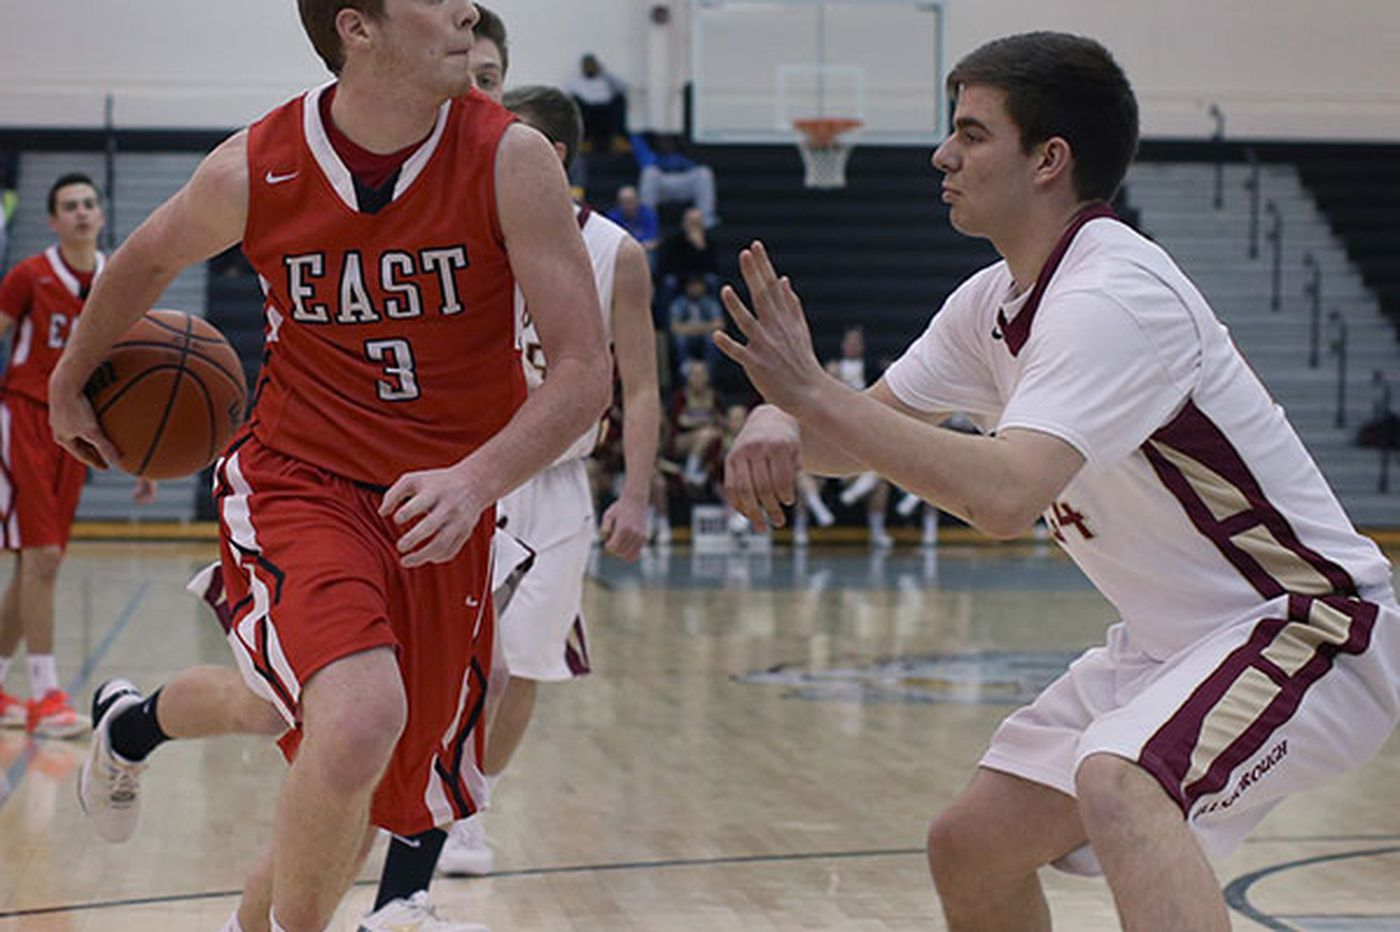 Narducci: Silpe helping Cherry Hill East to new heights